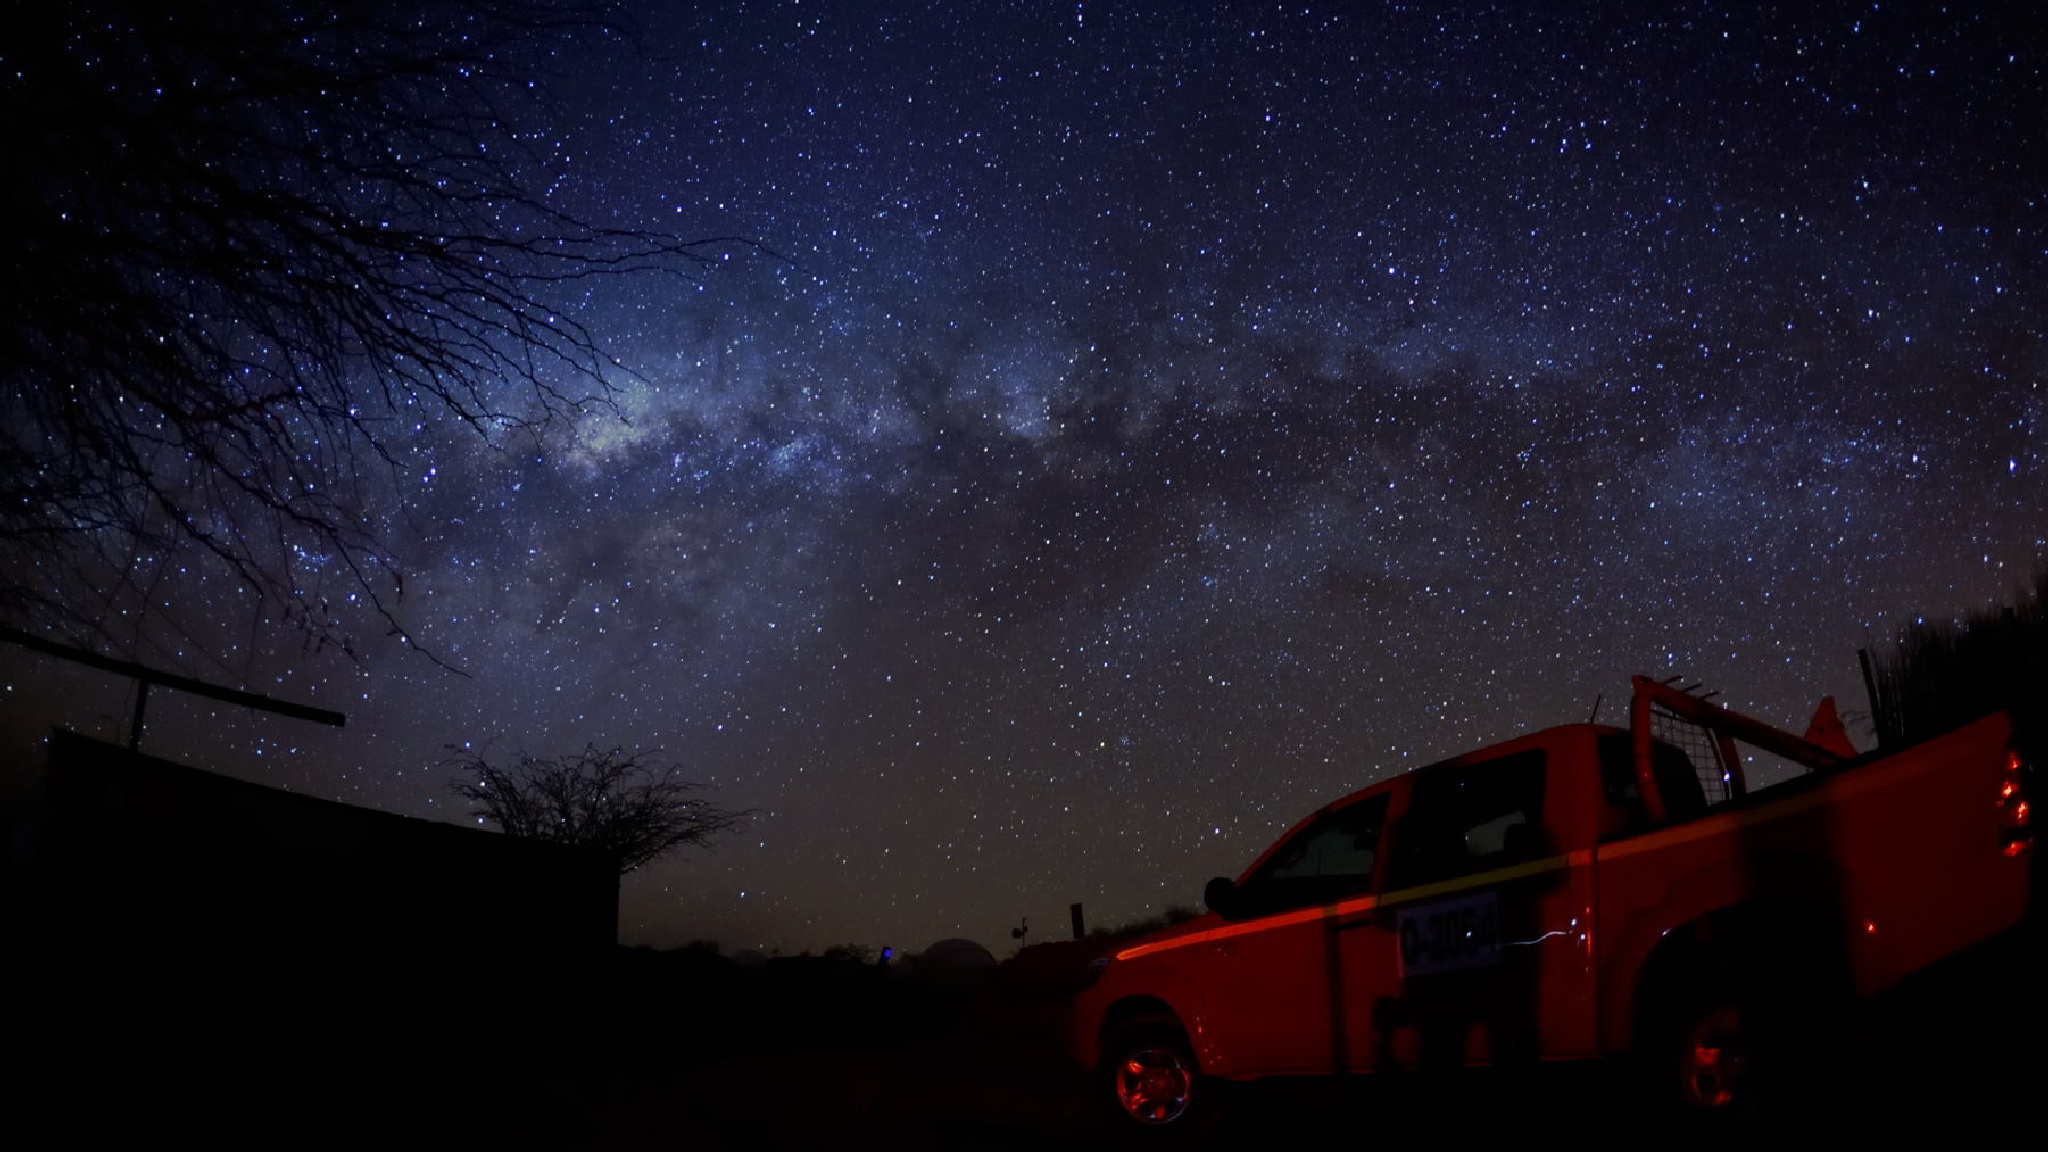 The Milkway over Atacama by Valdemar Ferreira Junior